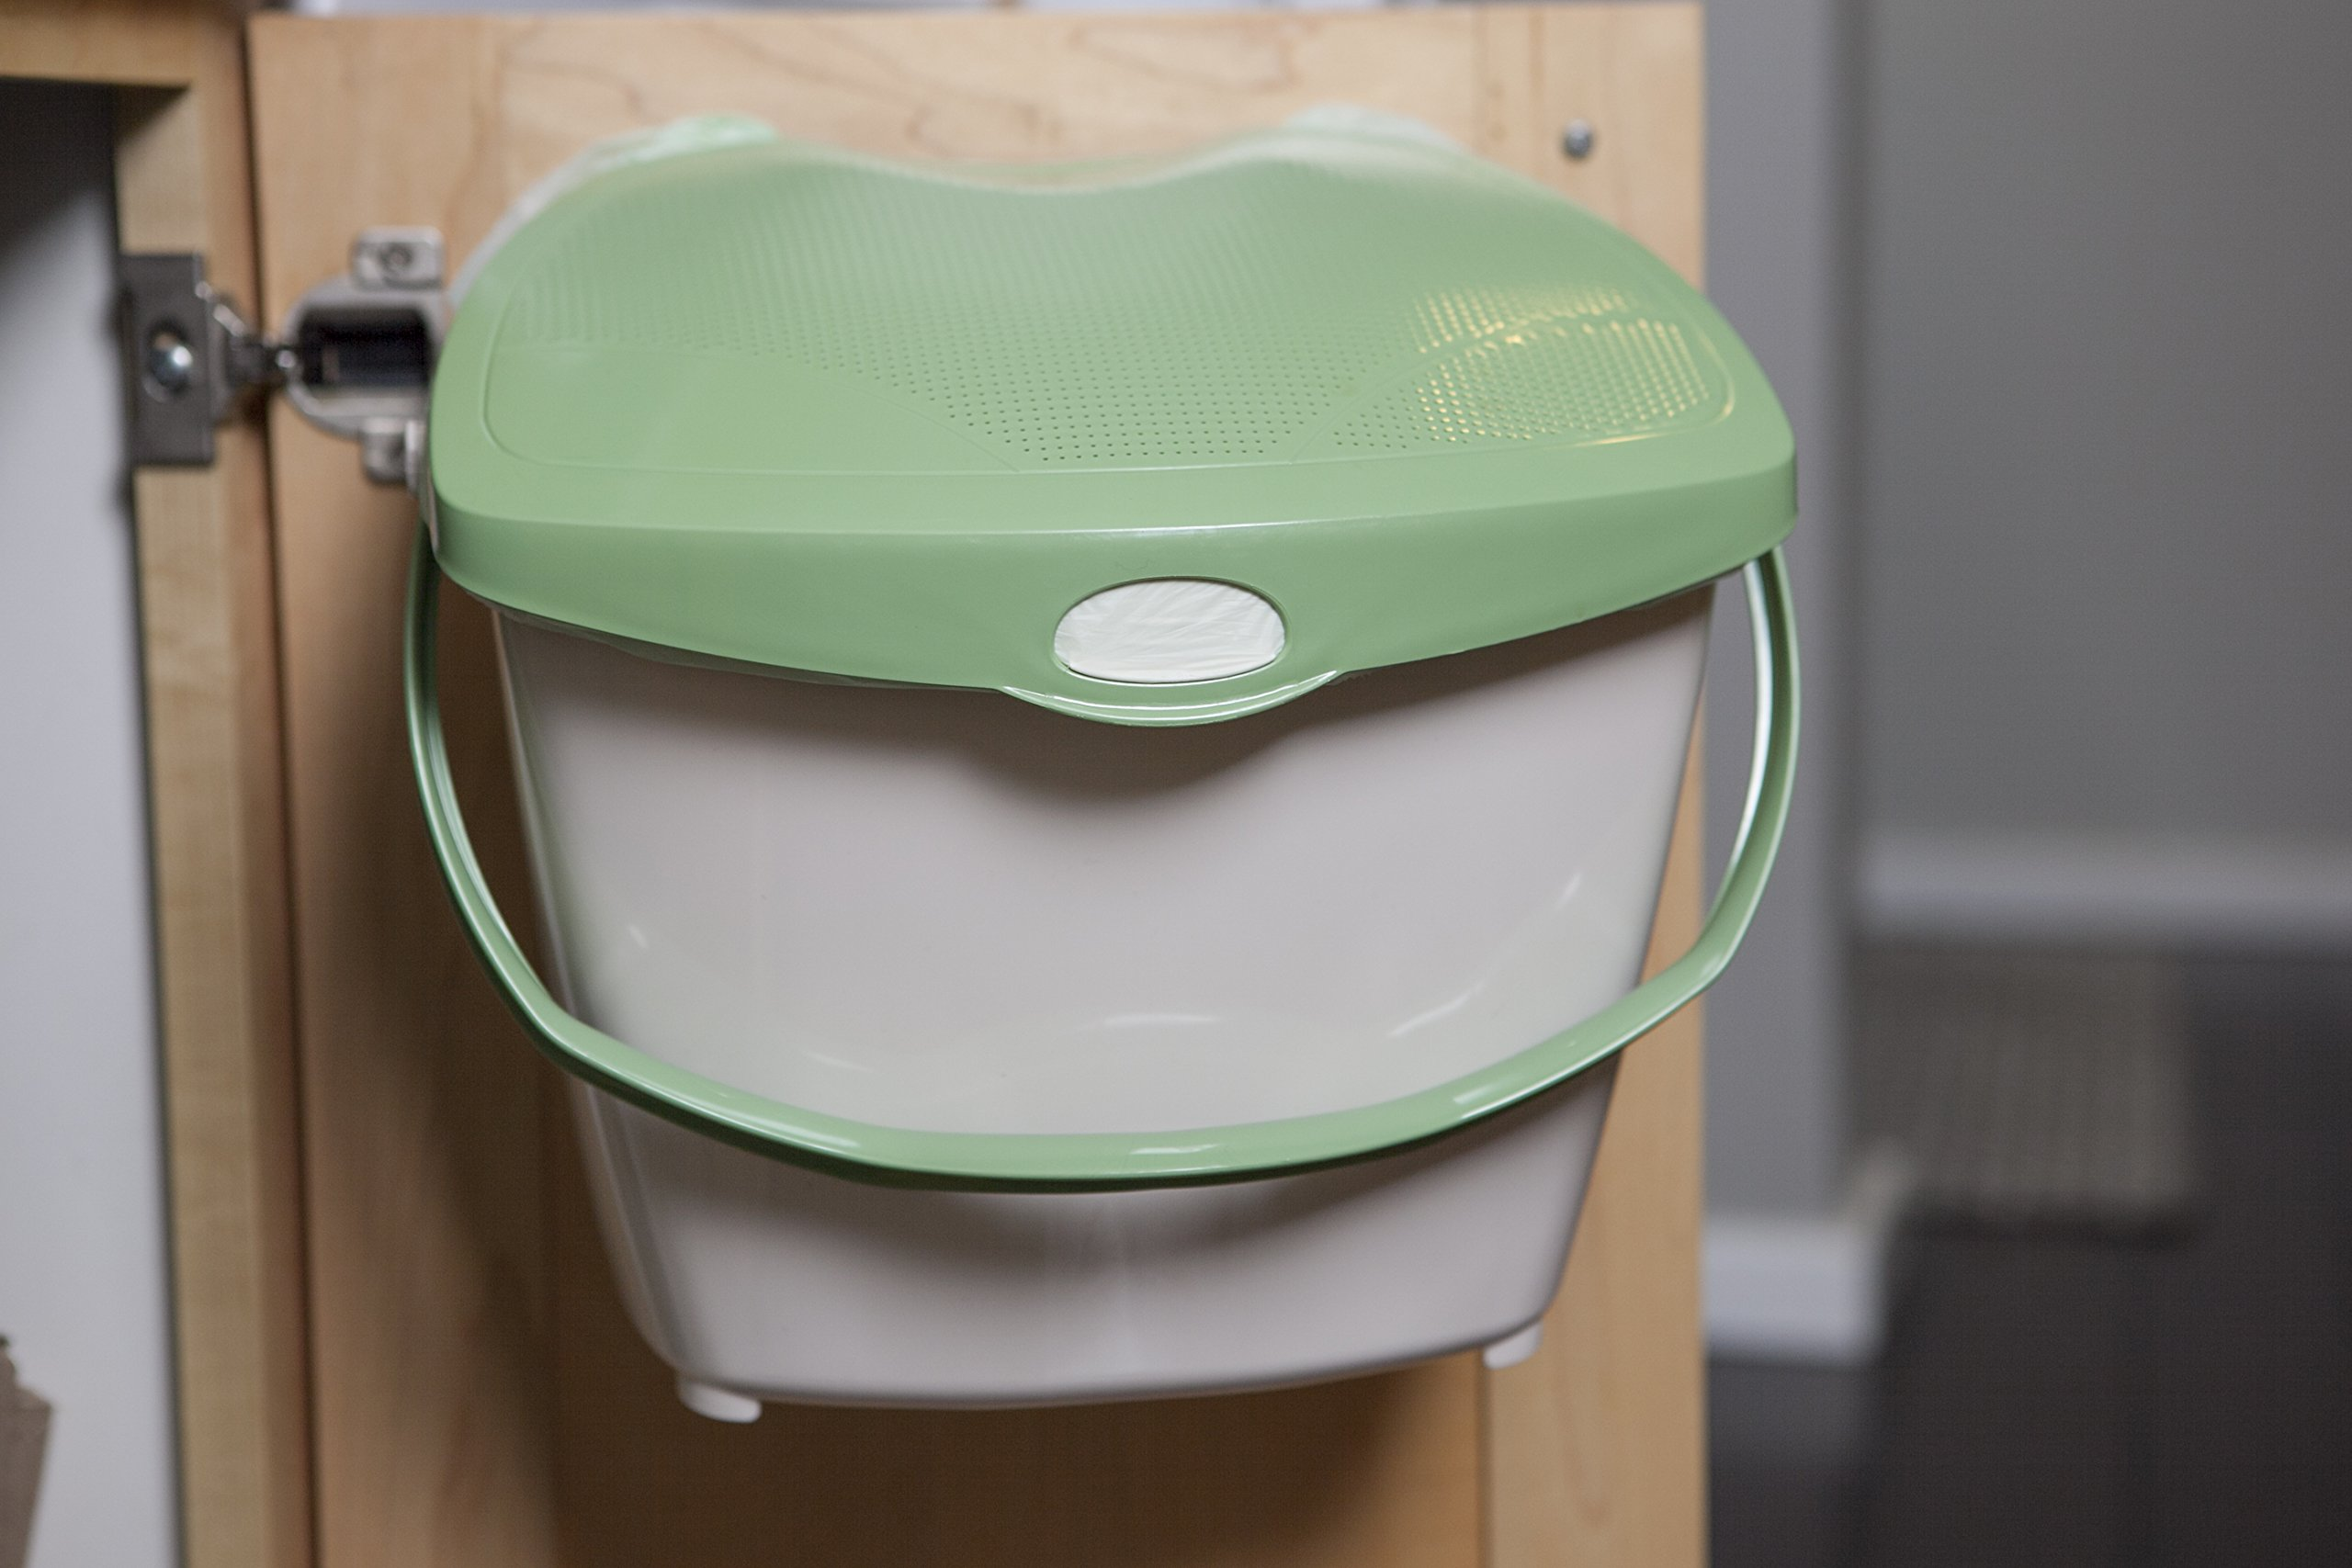 Mountable Kitchen Compost Bin by Zero Waste Together - 2 Gal, Under Sink, Countertop, Odor Free, Dishwasher Safe, Bags Ok, Made in Canada